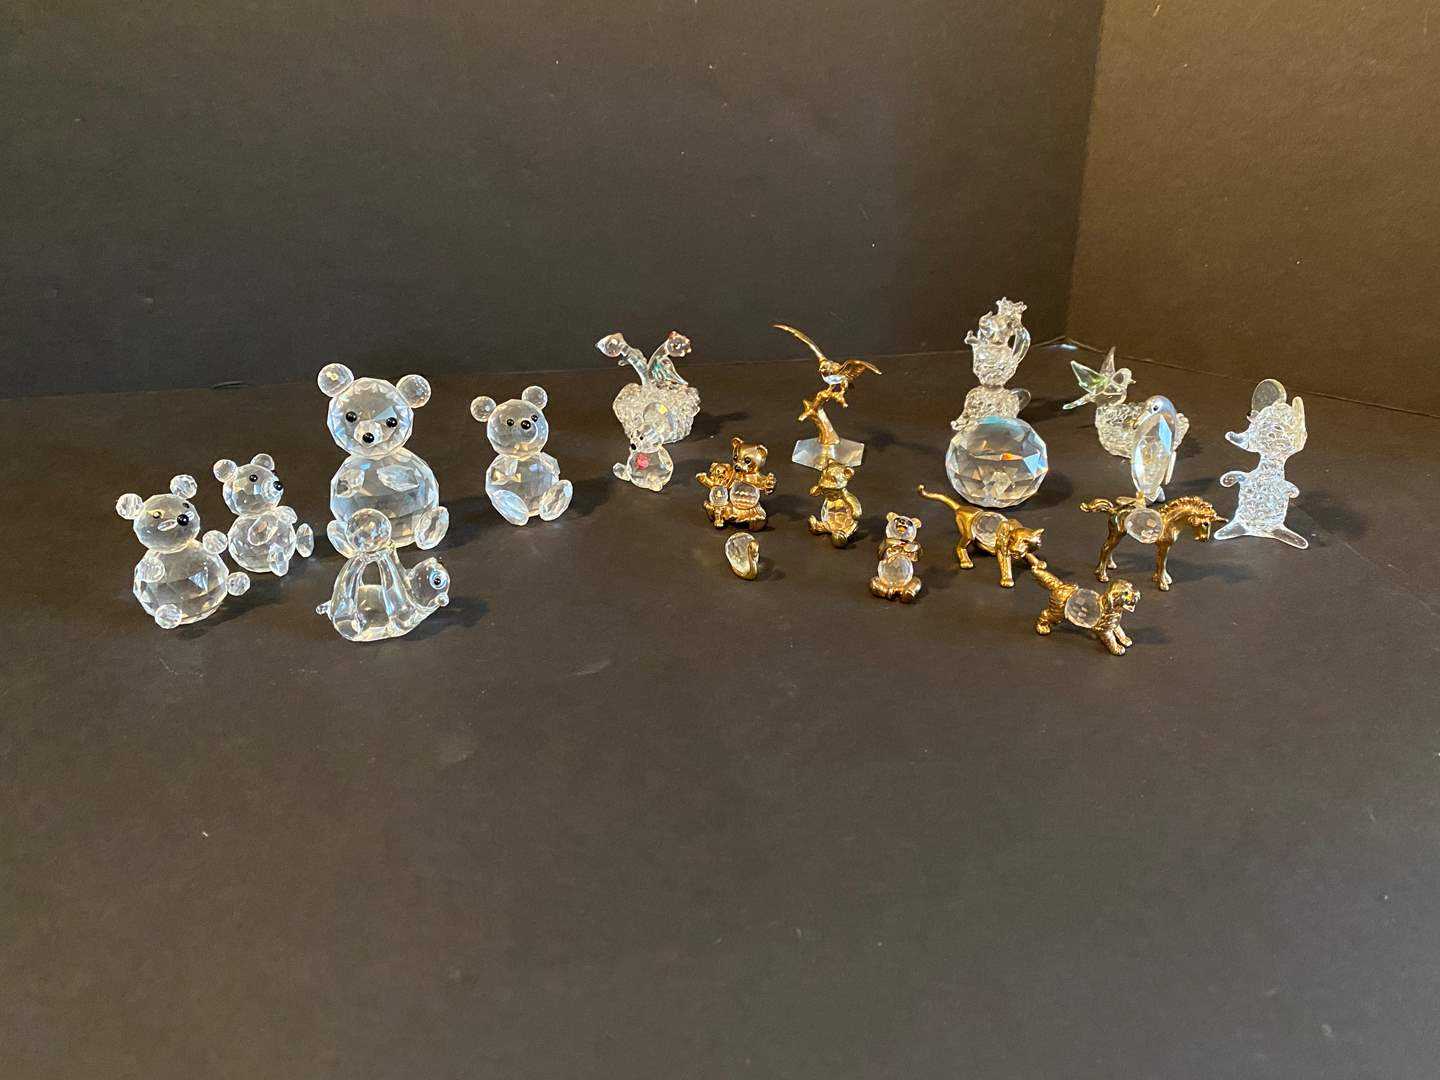 Lot # 17 - Swarovski Crystal Bears & Other Misc. Glass, Crystal & Metal Tchotchkes (main image)